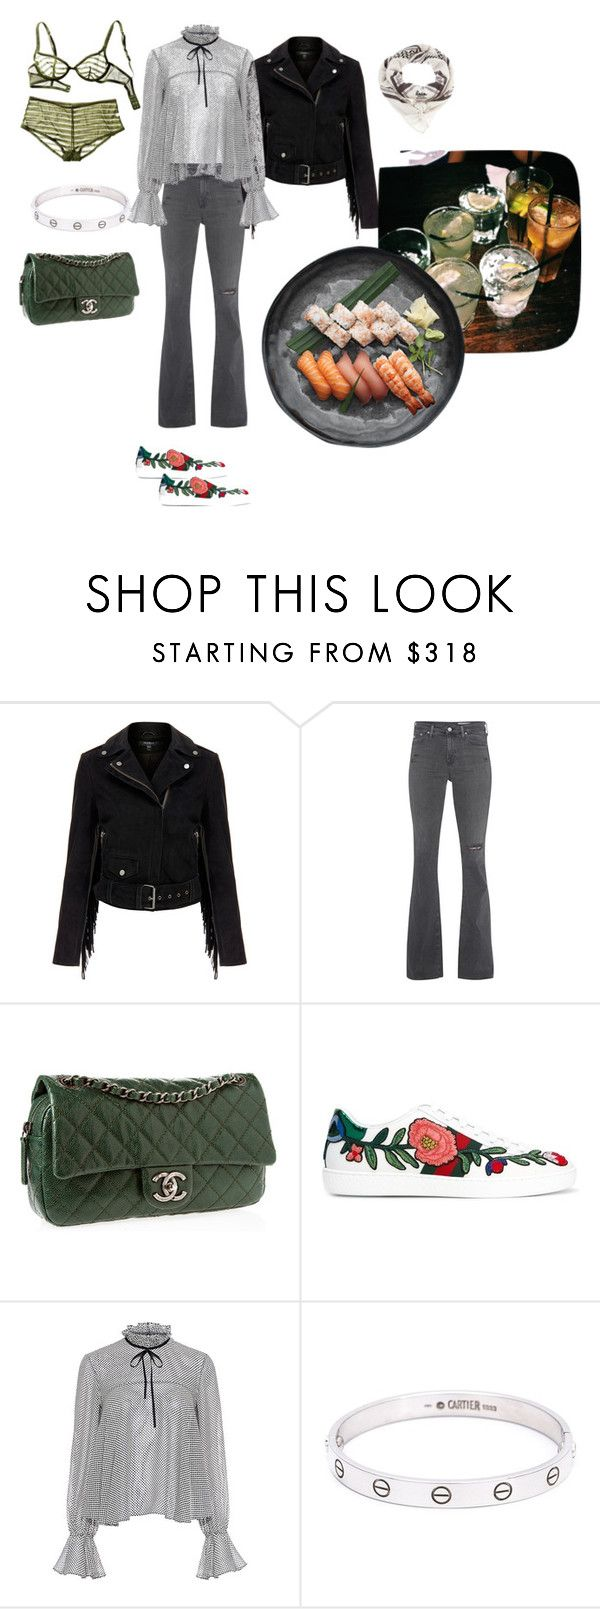 """""""sushi date"""" by rania-hawilo ❤ liked on Polyvore featuring Jenna Leigh, MuuBaa, AG Adriano Goldschmied, Chanel, Gucci, Saloni, Cartier and Lala Berlin"""